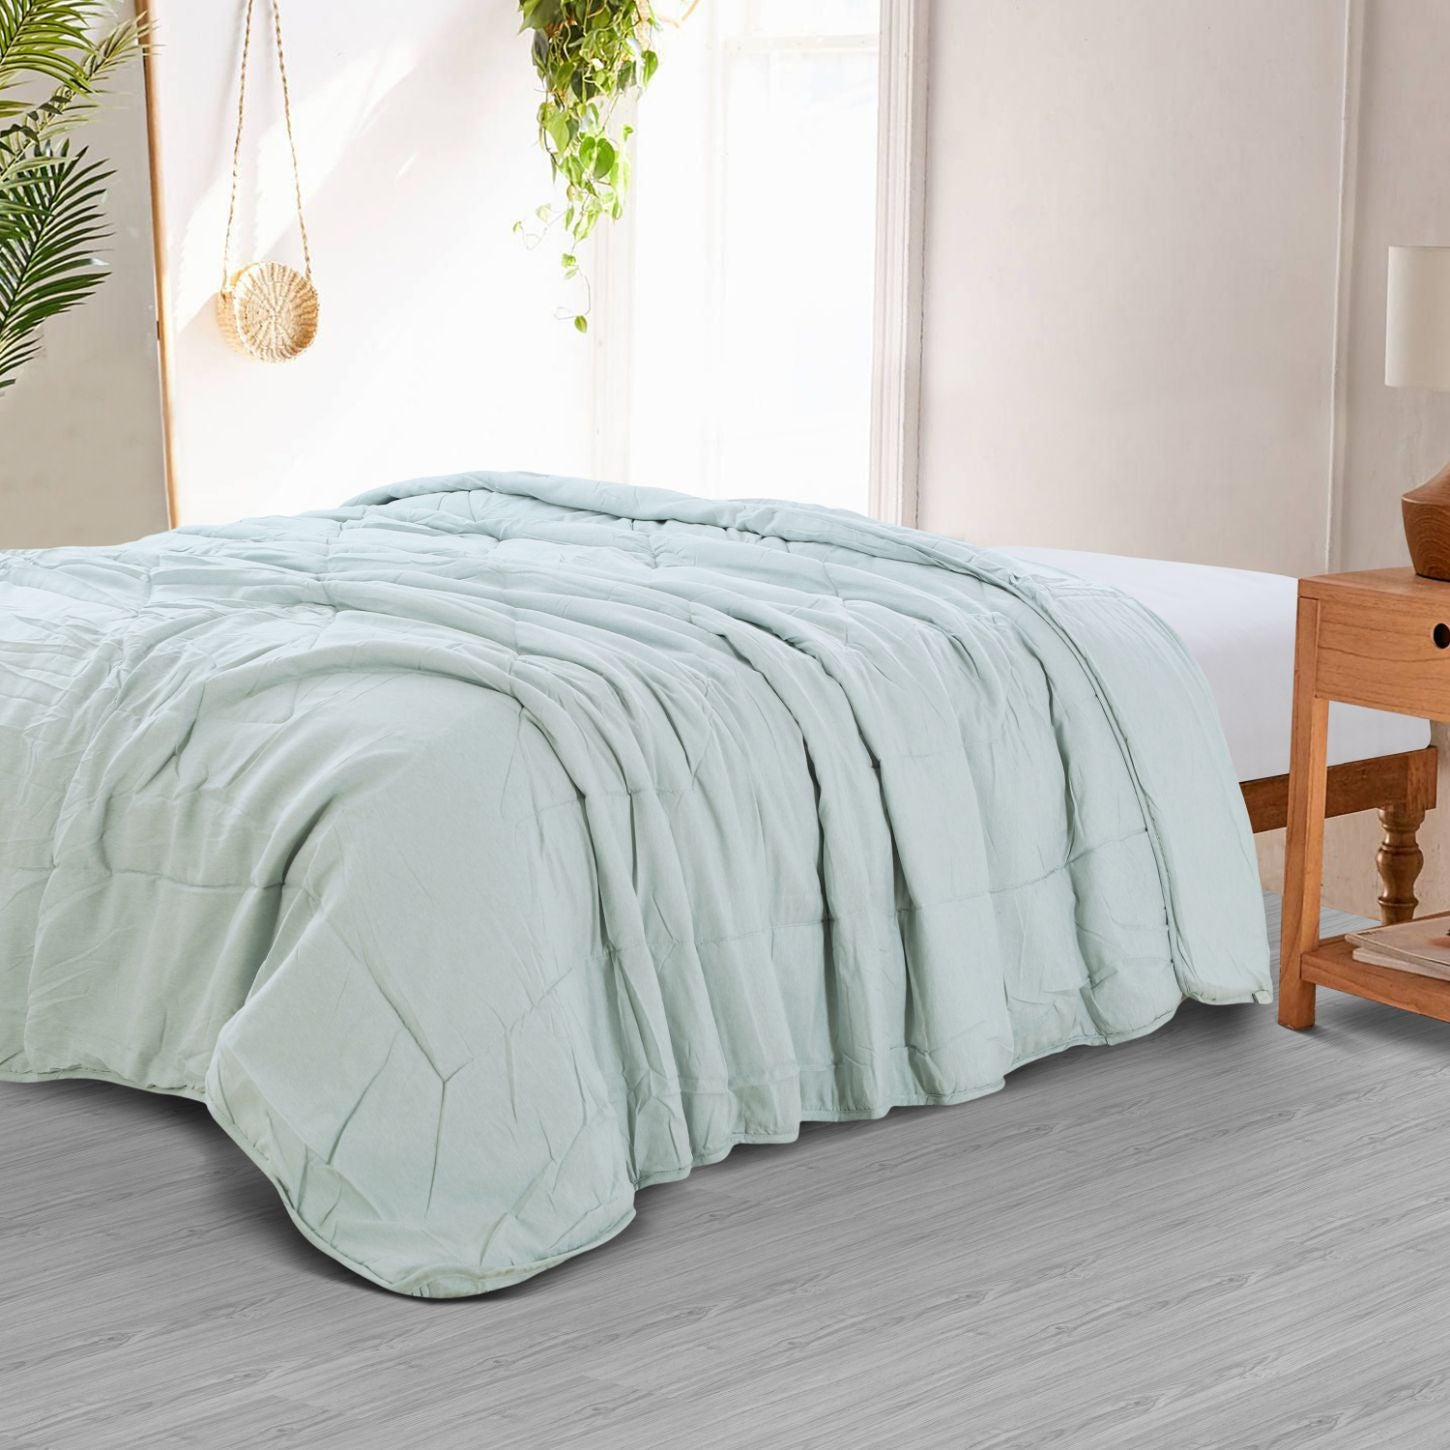 Countryside Summer AC Quilt - Green